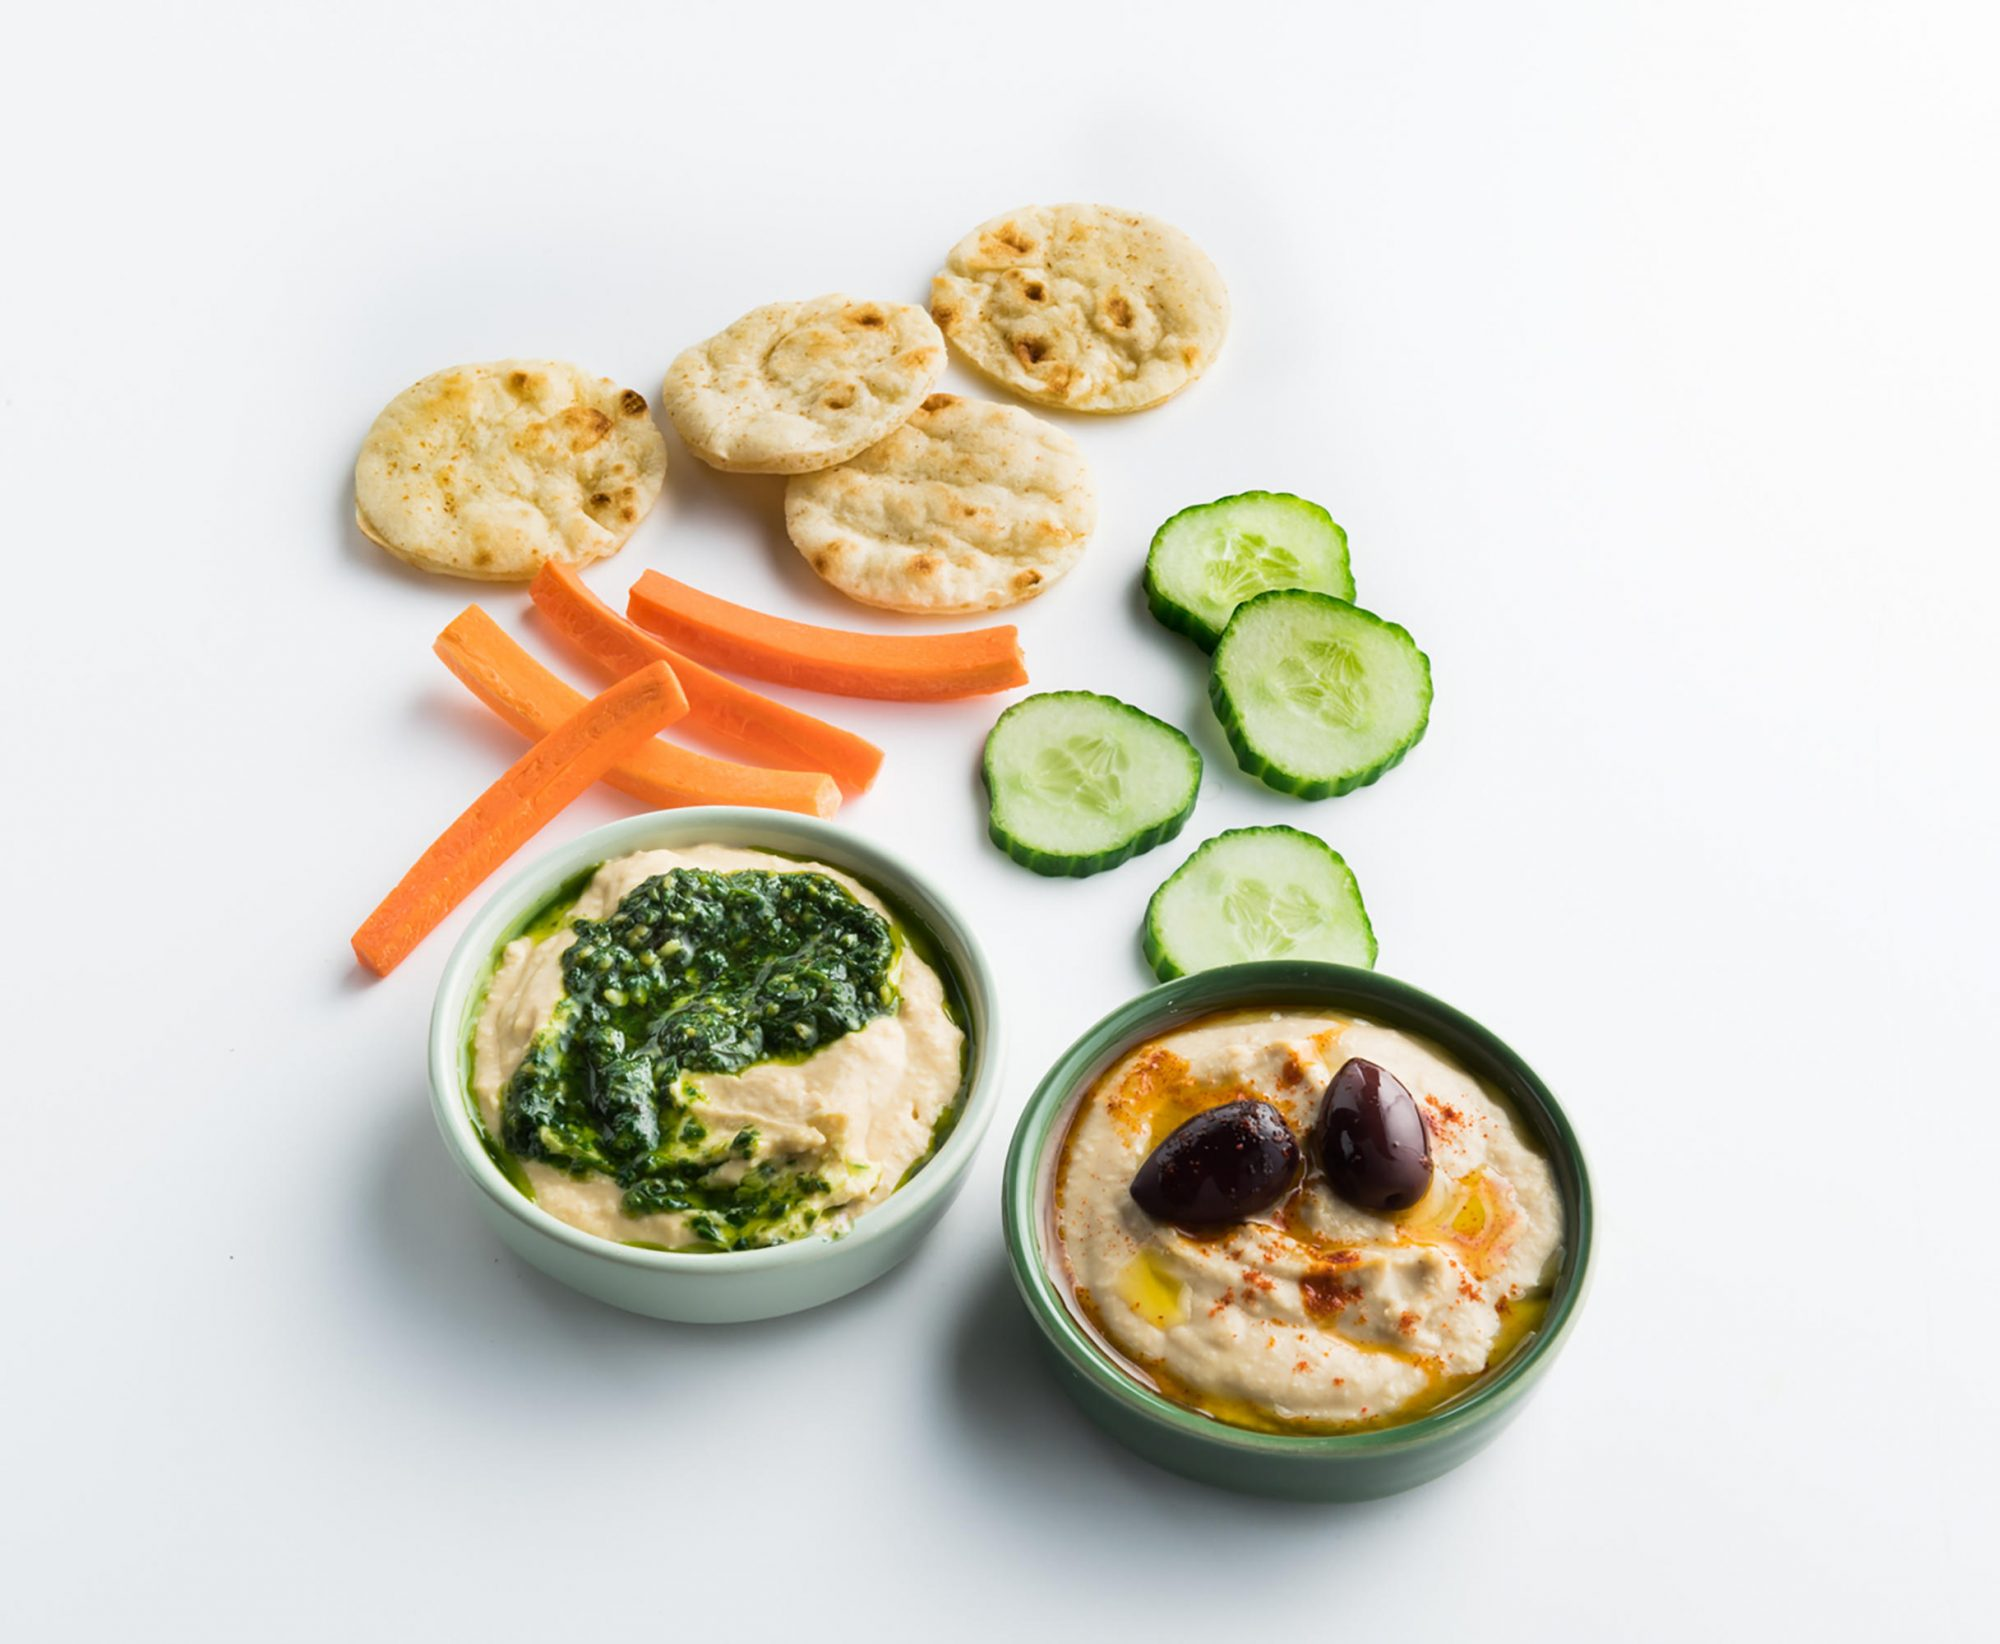 American Airlines Is Bringing Healthier Meals From Zoë's Kitchen to Domestic Flights 1809w-Zoes-hummus